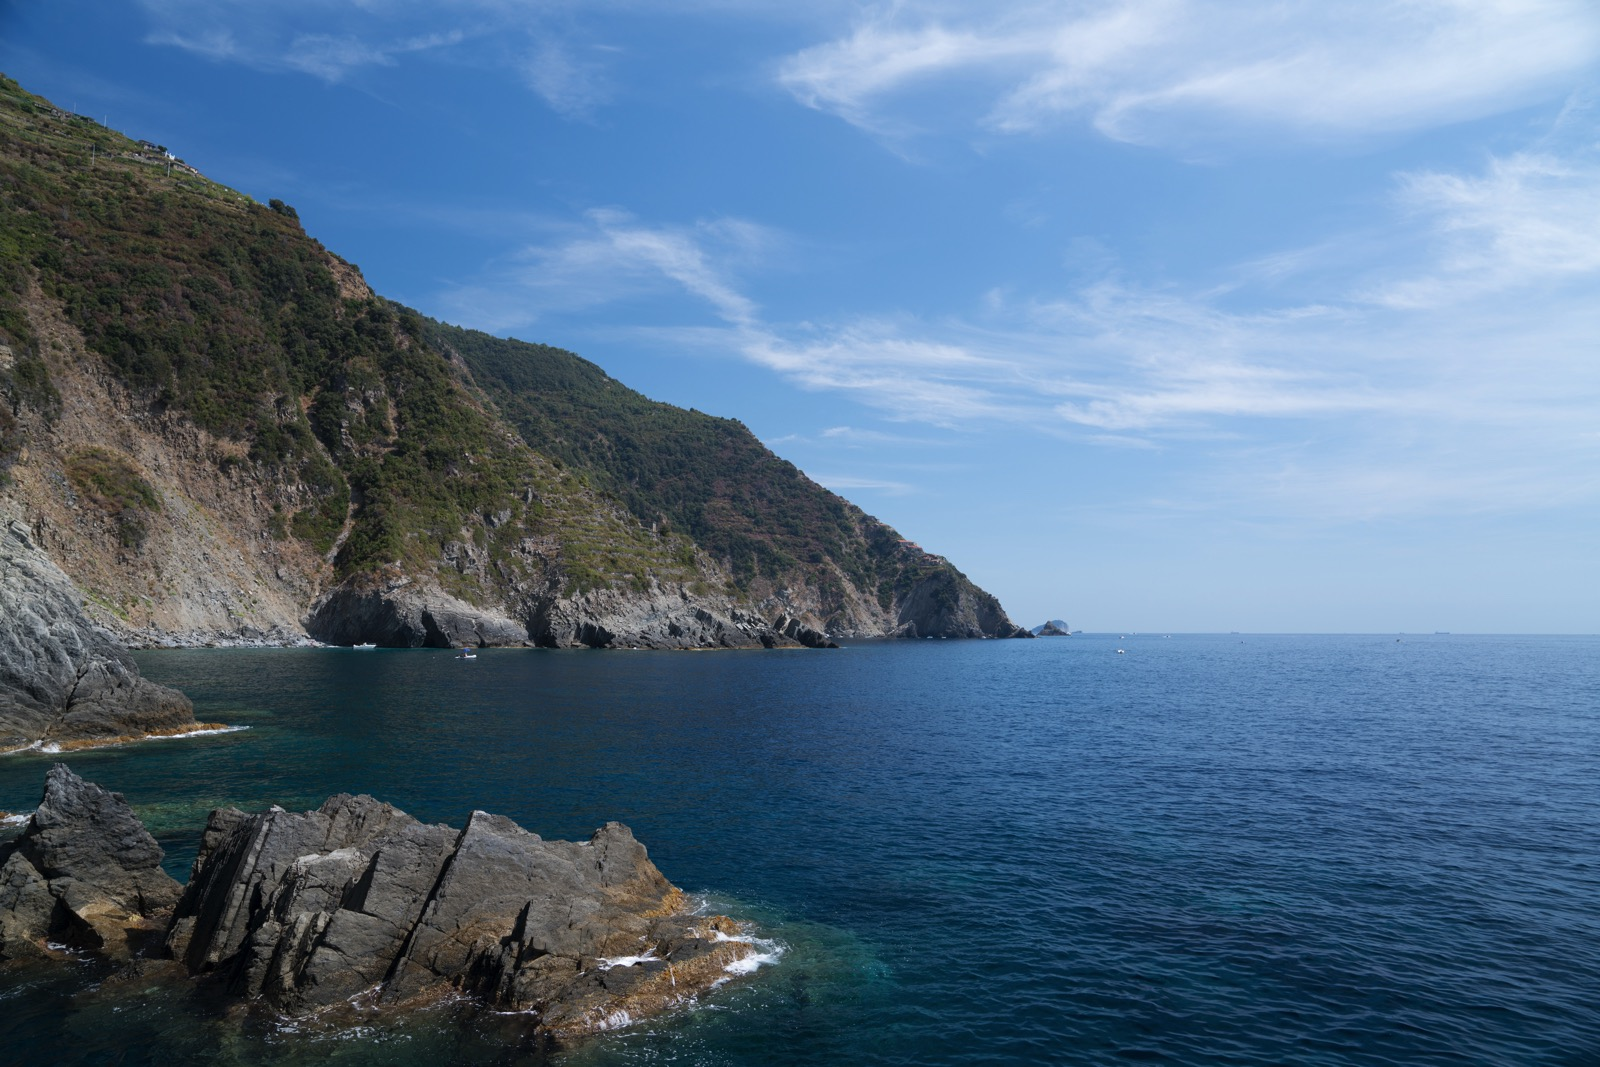 The view from the rocks where we took a break from kayaking, somewhere south of Riomaggiore in the Ligurian Sea.   (Liguria, Italy.)